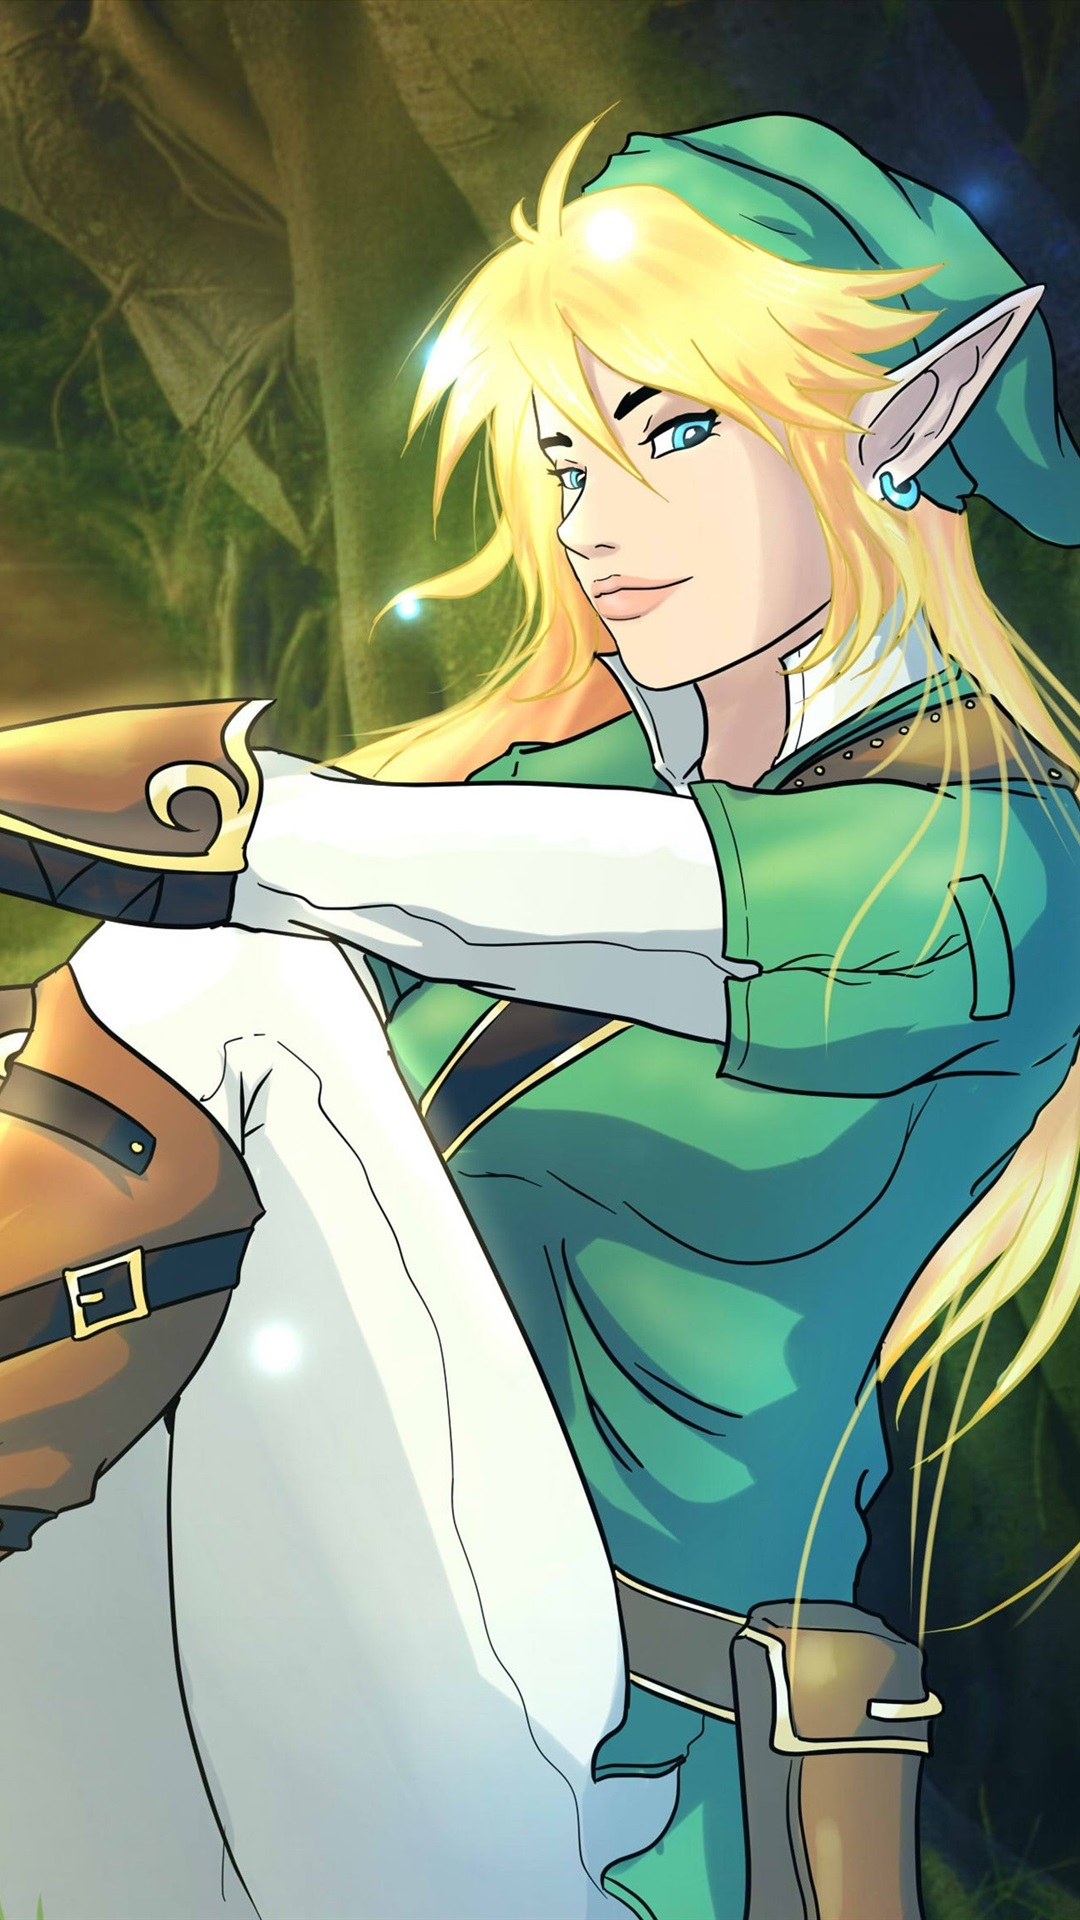 The Legend Of Zelda Sun Game Art 1080x1920 Iphone 8 7 6 6s Plus Wallpaper Background Picture Image